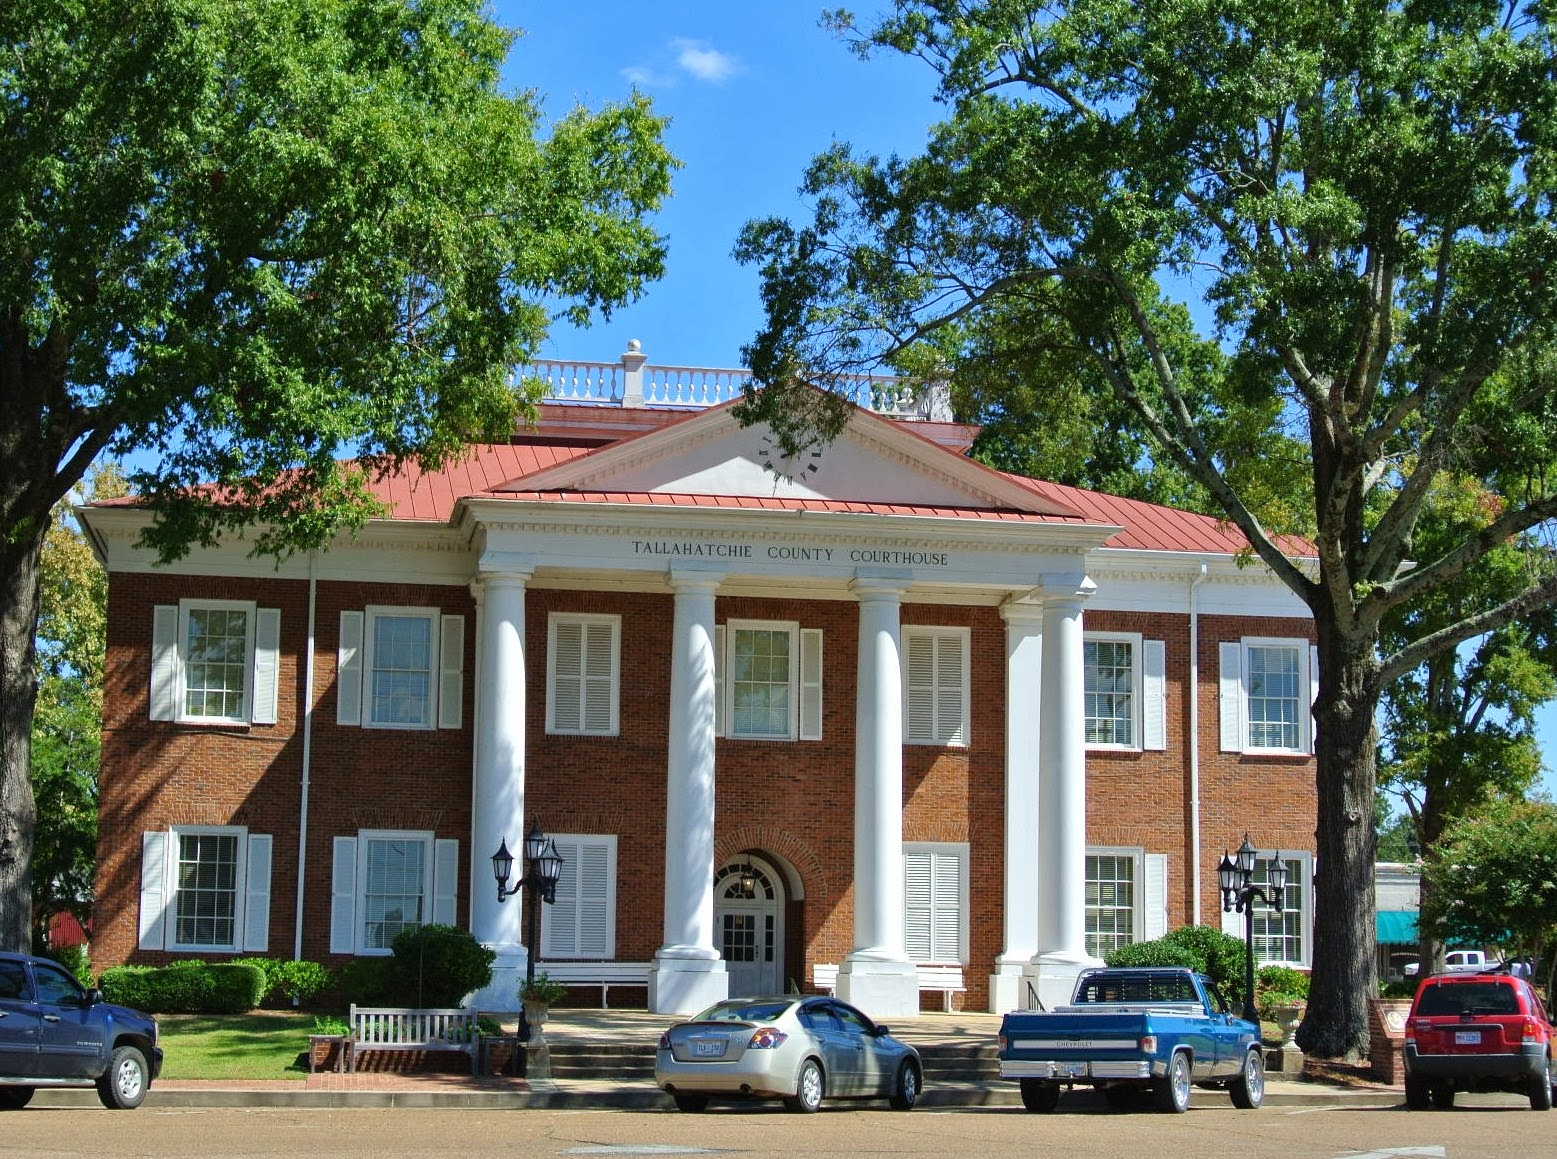 Mississippi tallahatchie county tippo - Tallahatchie County Courthouse Located In Charleston Ms Charleston Is One Of The Two County Seats Of Tallahatchie County Sumner Is The Other